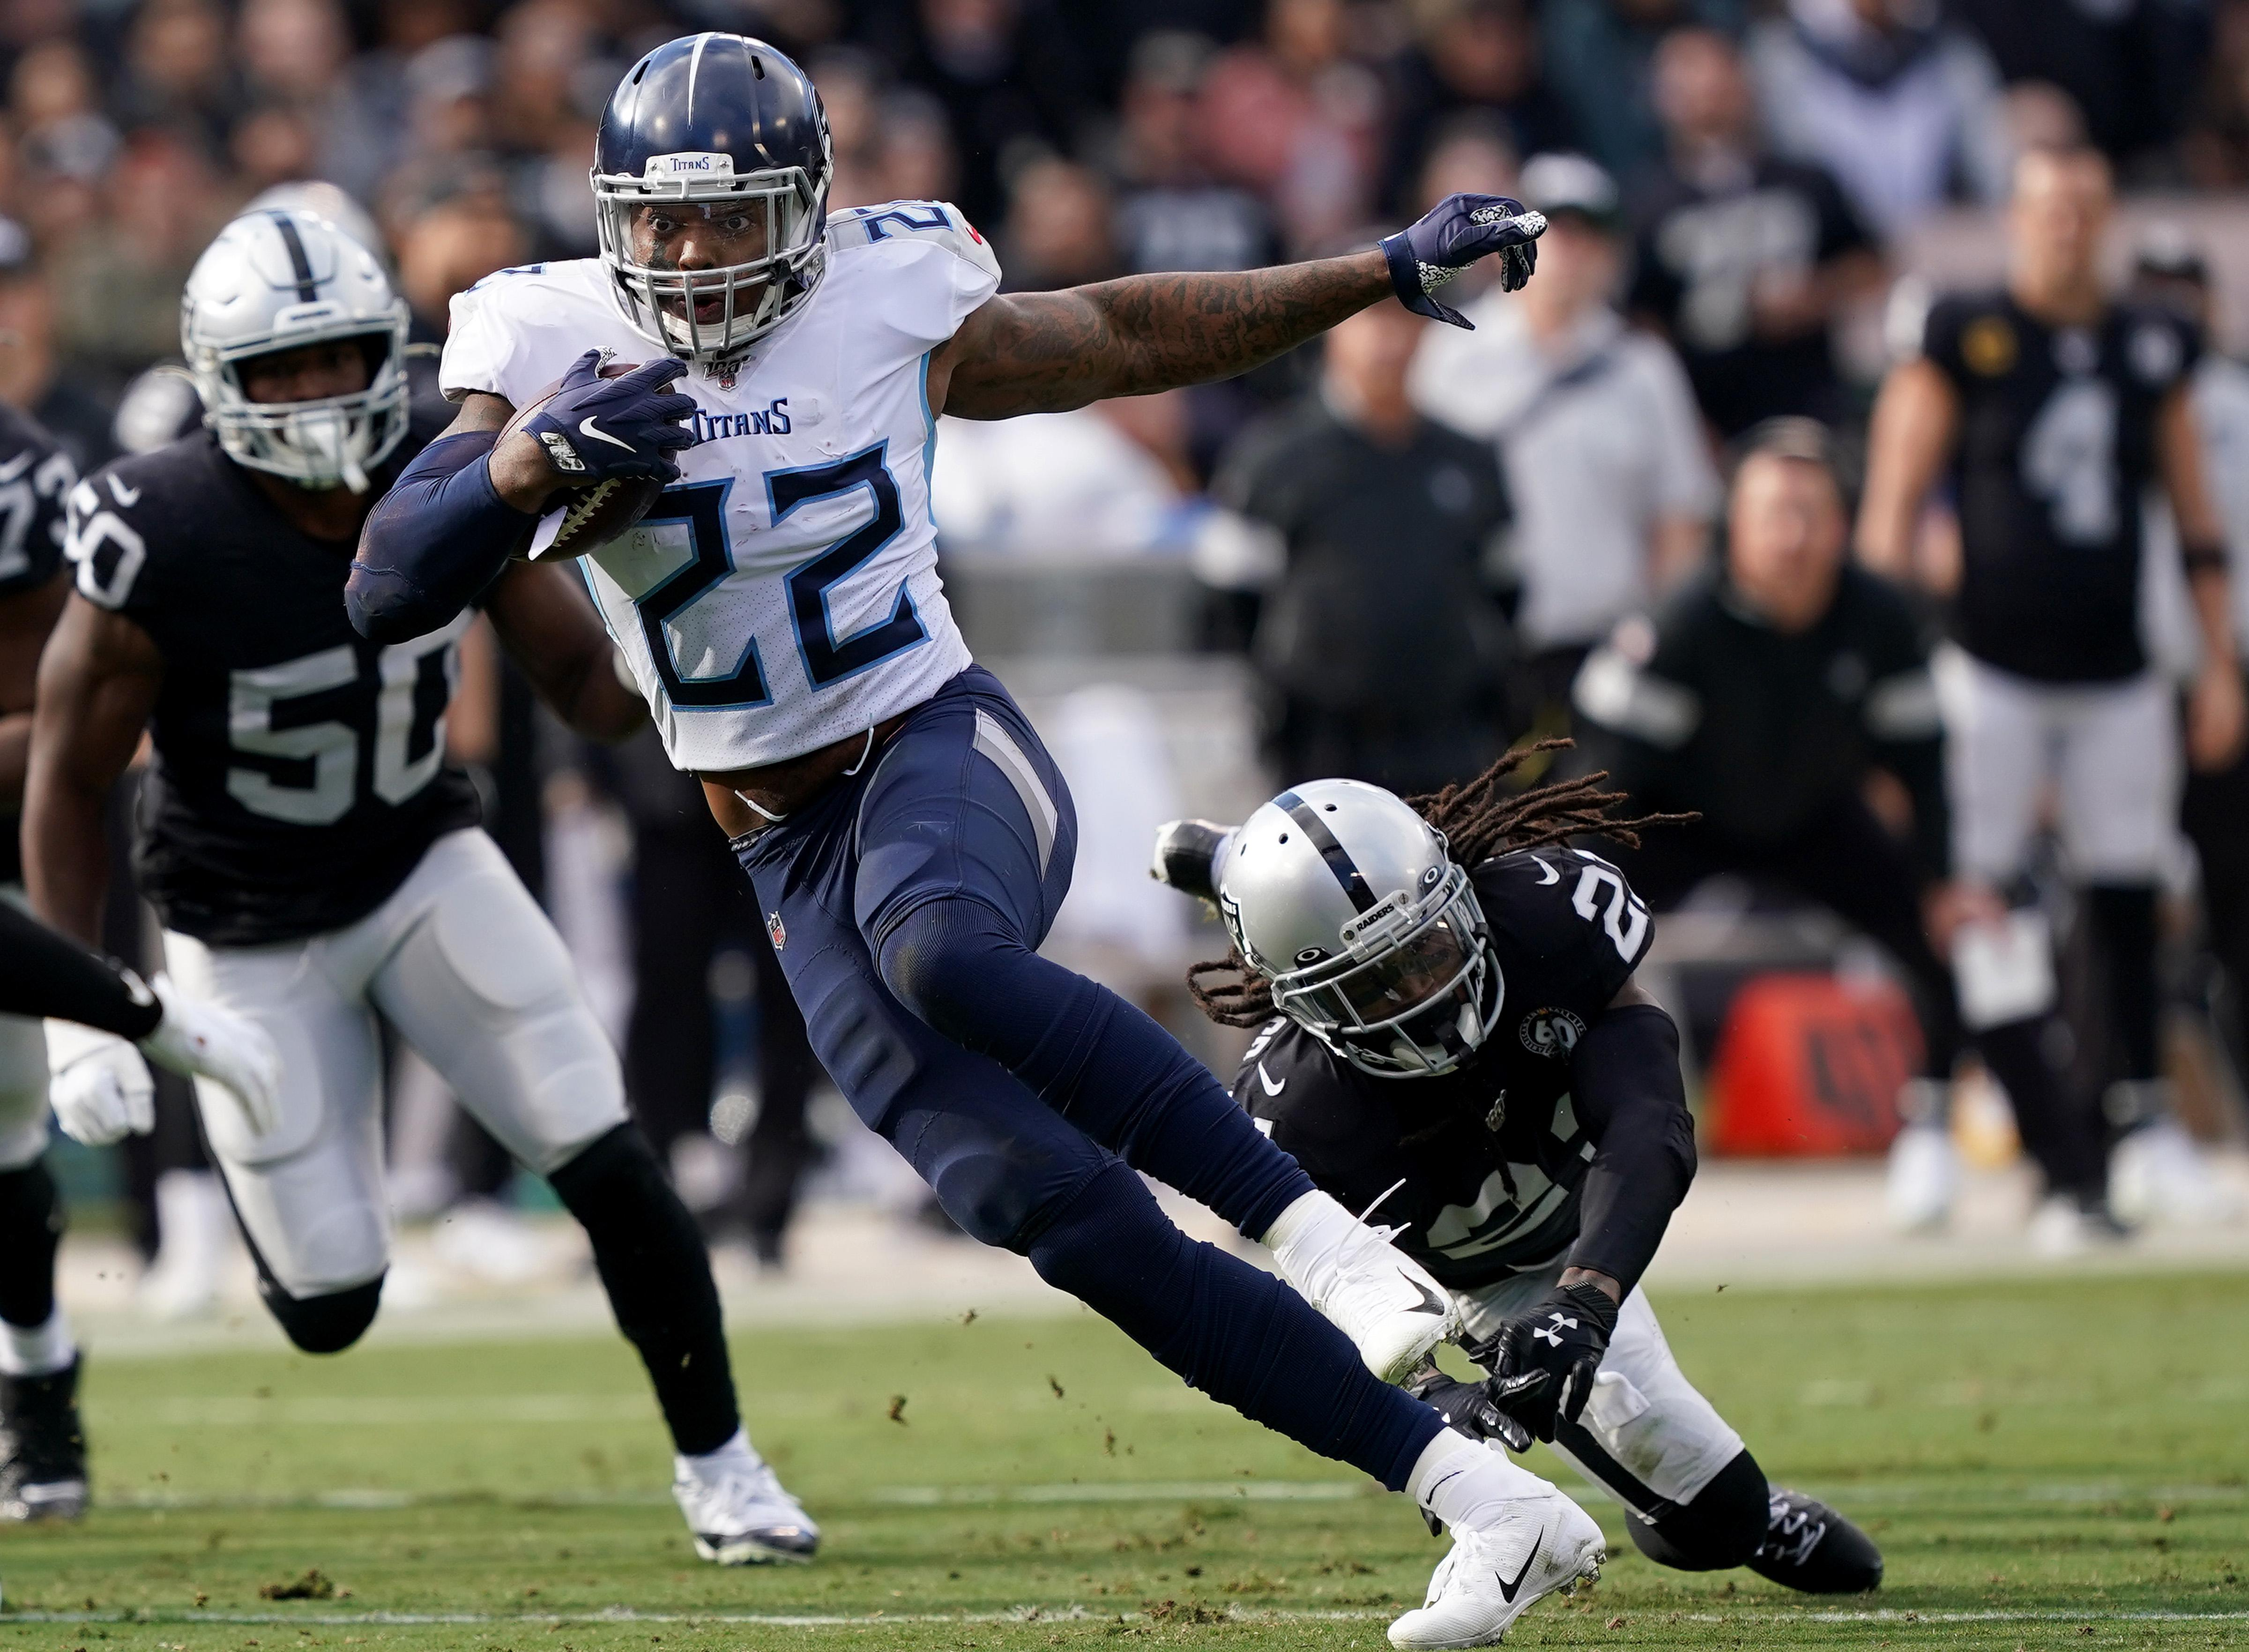 Titans RB Derrick Henry expected to sit vs. Saints due to ...Derrick Henry